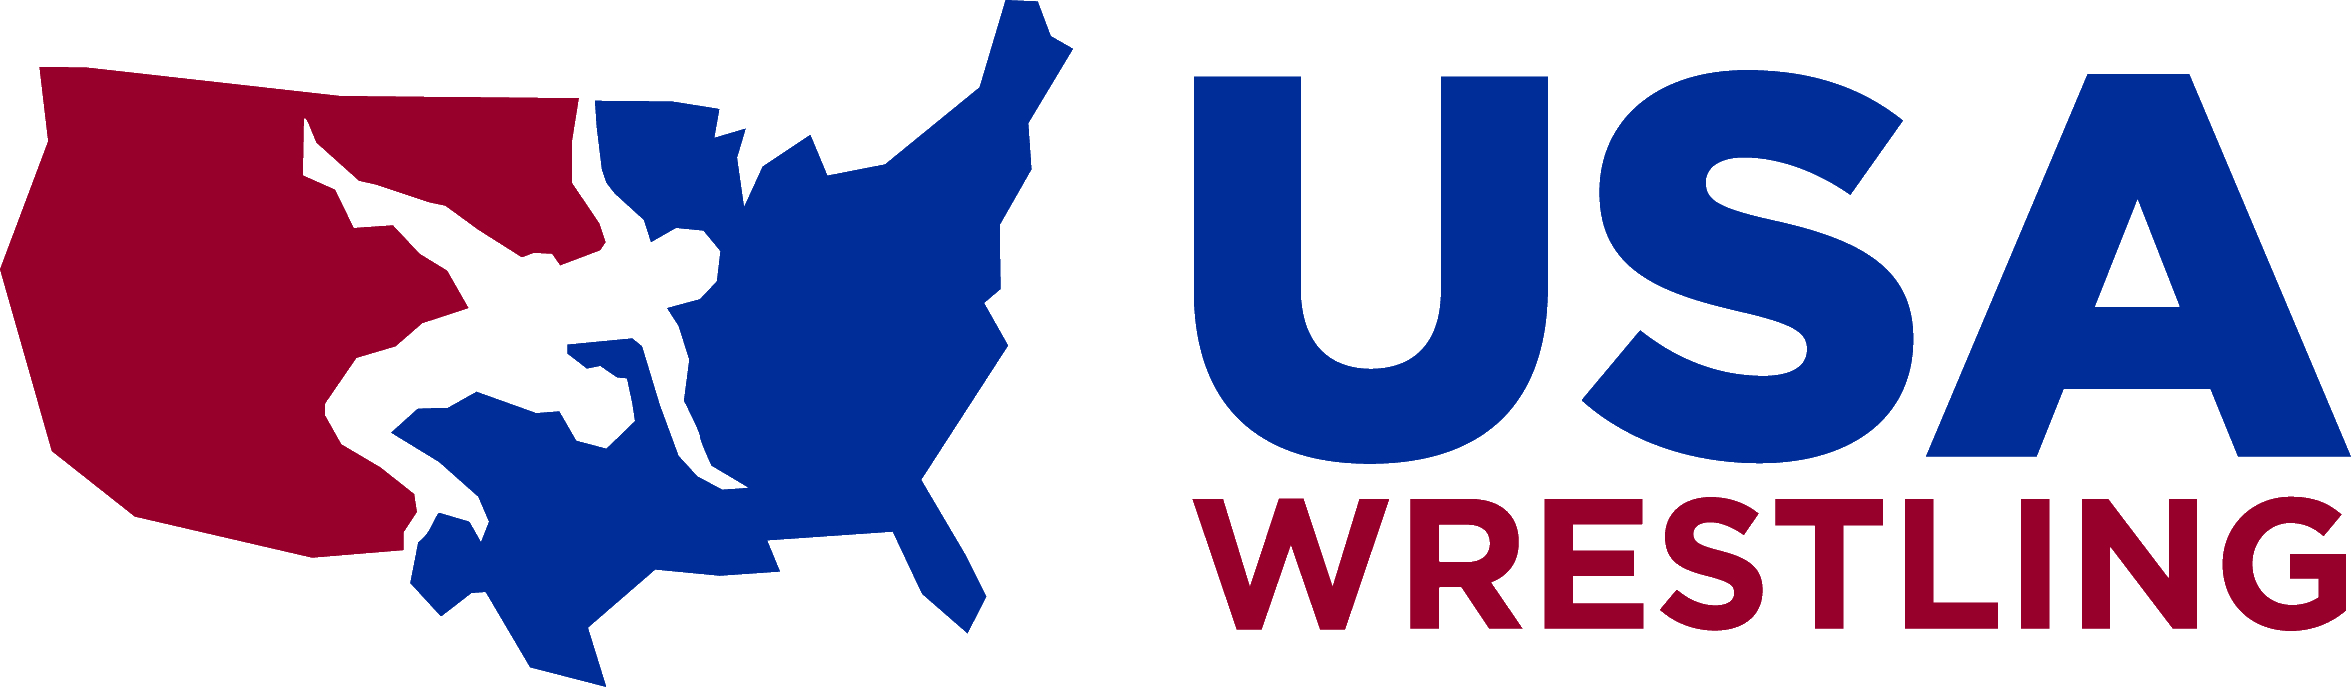 Free Usa Wrestling Cliparts, Download Free Clip Art, Free.